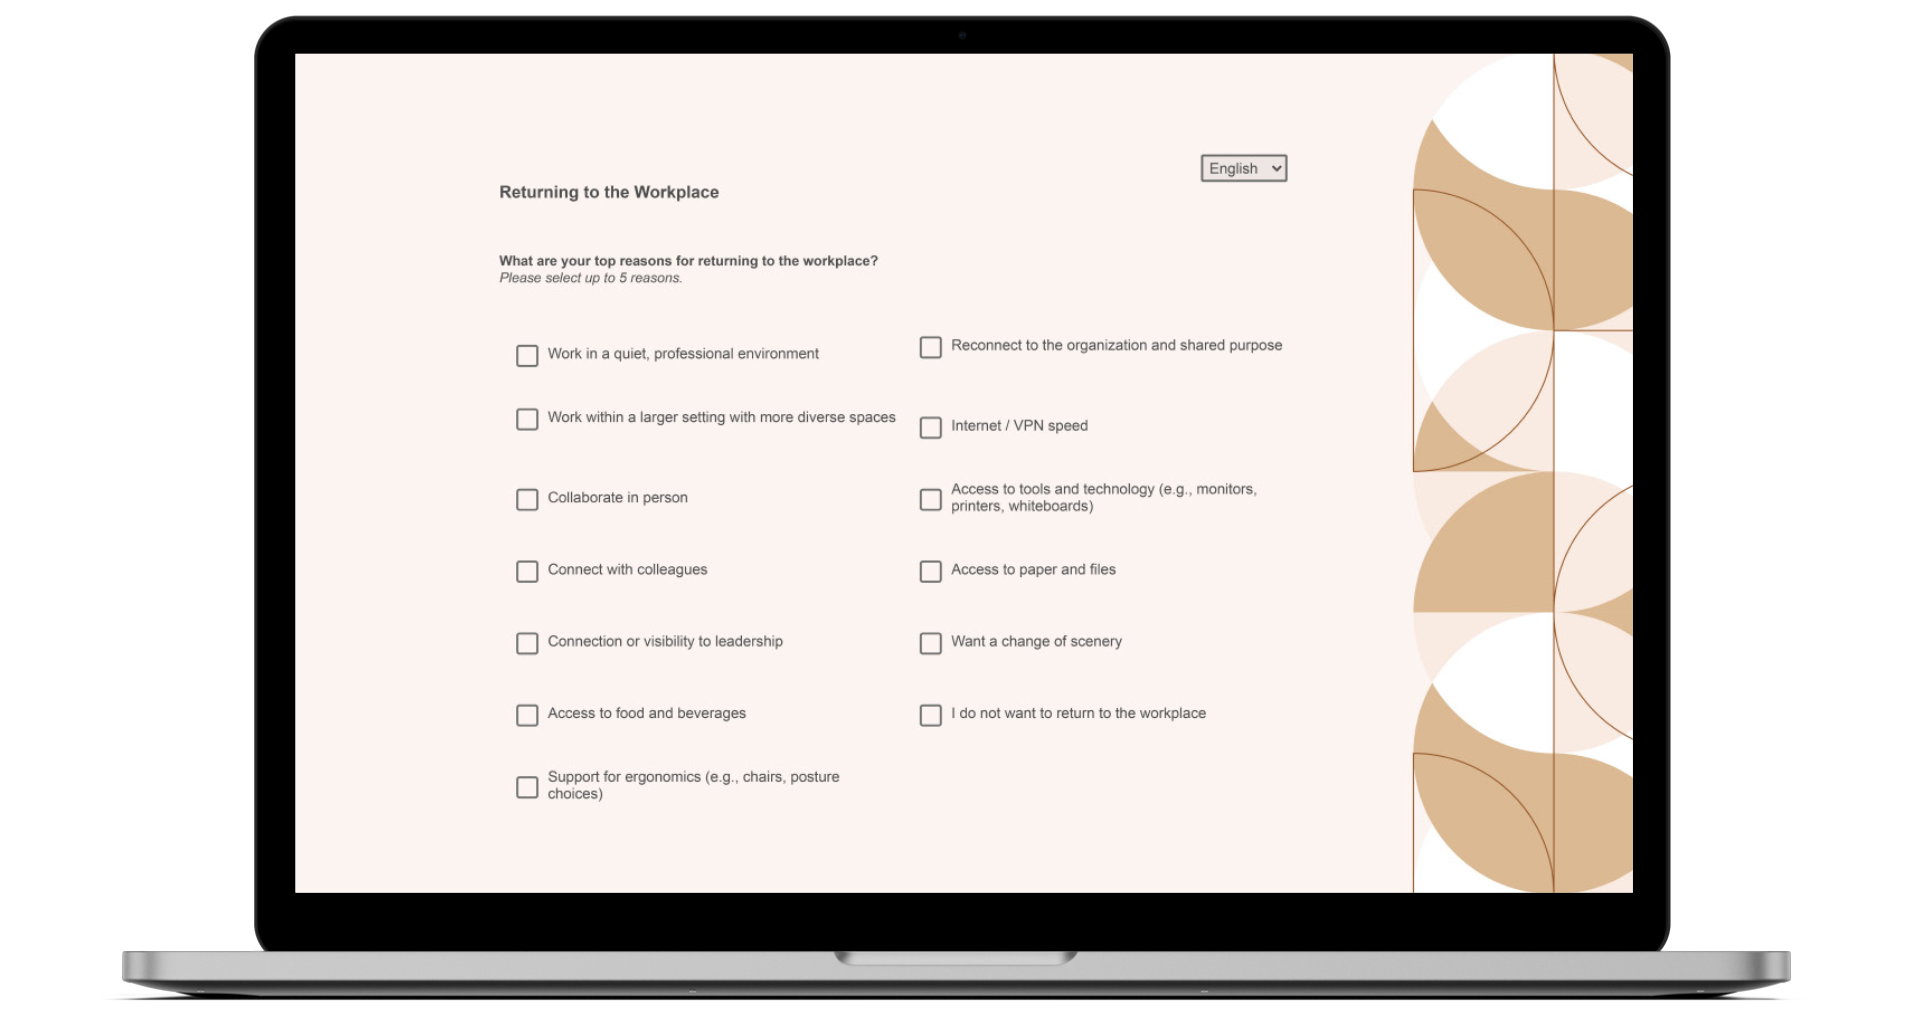 Take a demo of the NBS Steelcase Workplace Survey